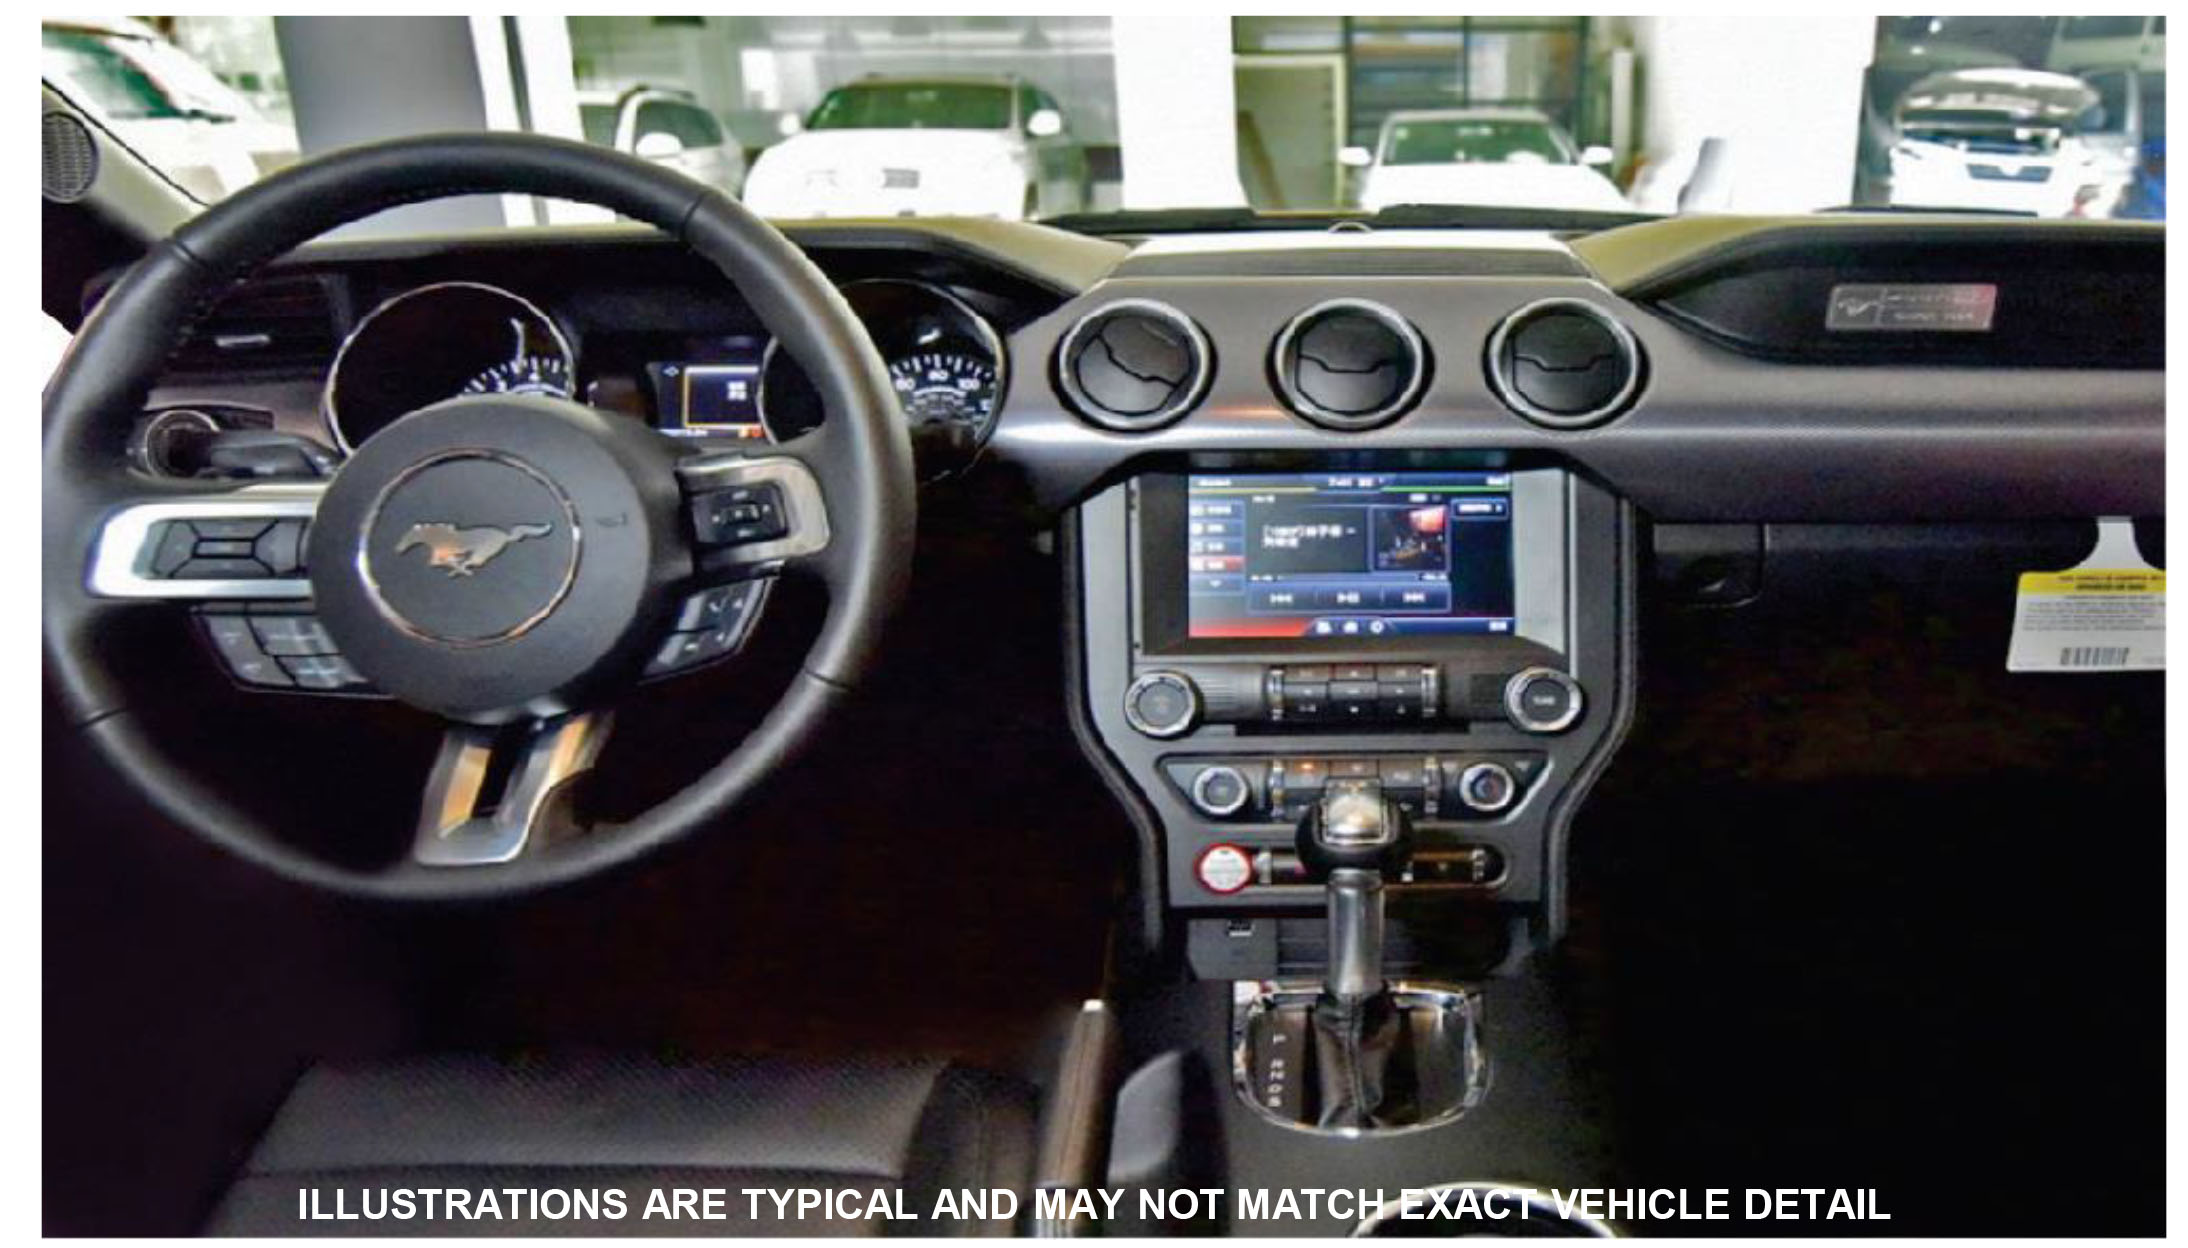 Raxiom navigation & touch screen upgrade for oe radio